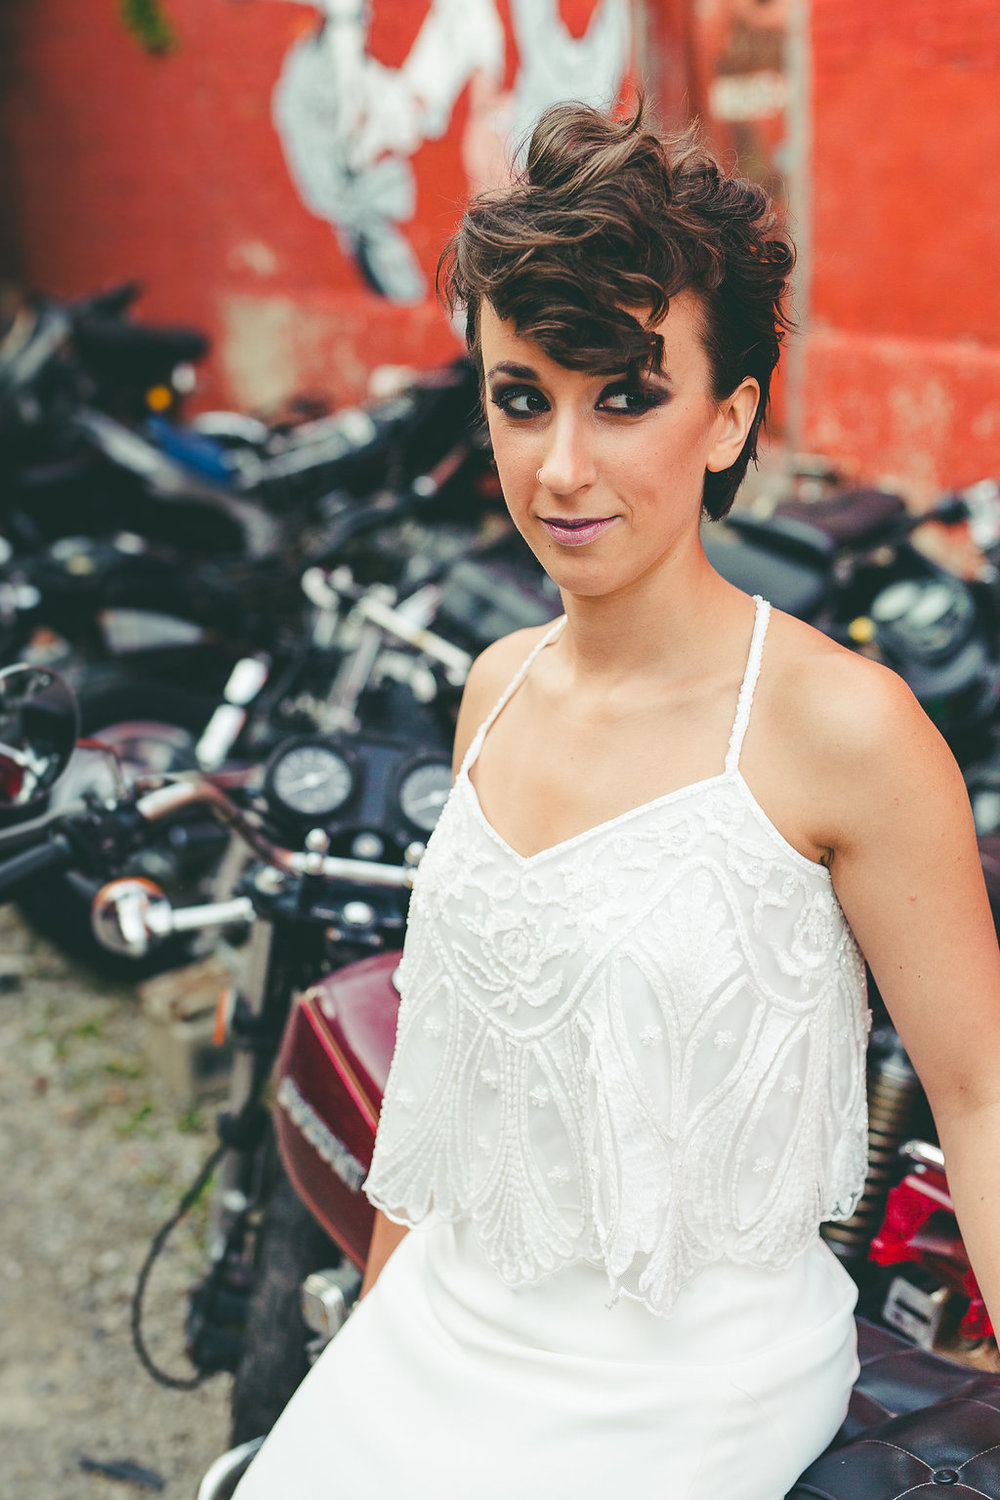 Columbus Ohio Grunge Wedding Inspiration Motorcycle